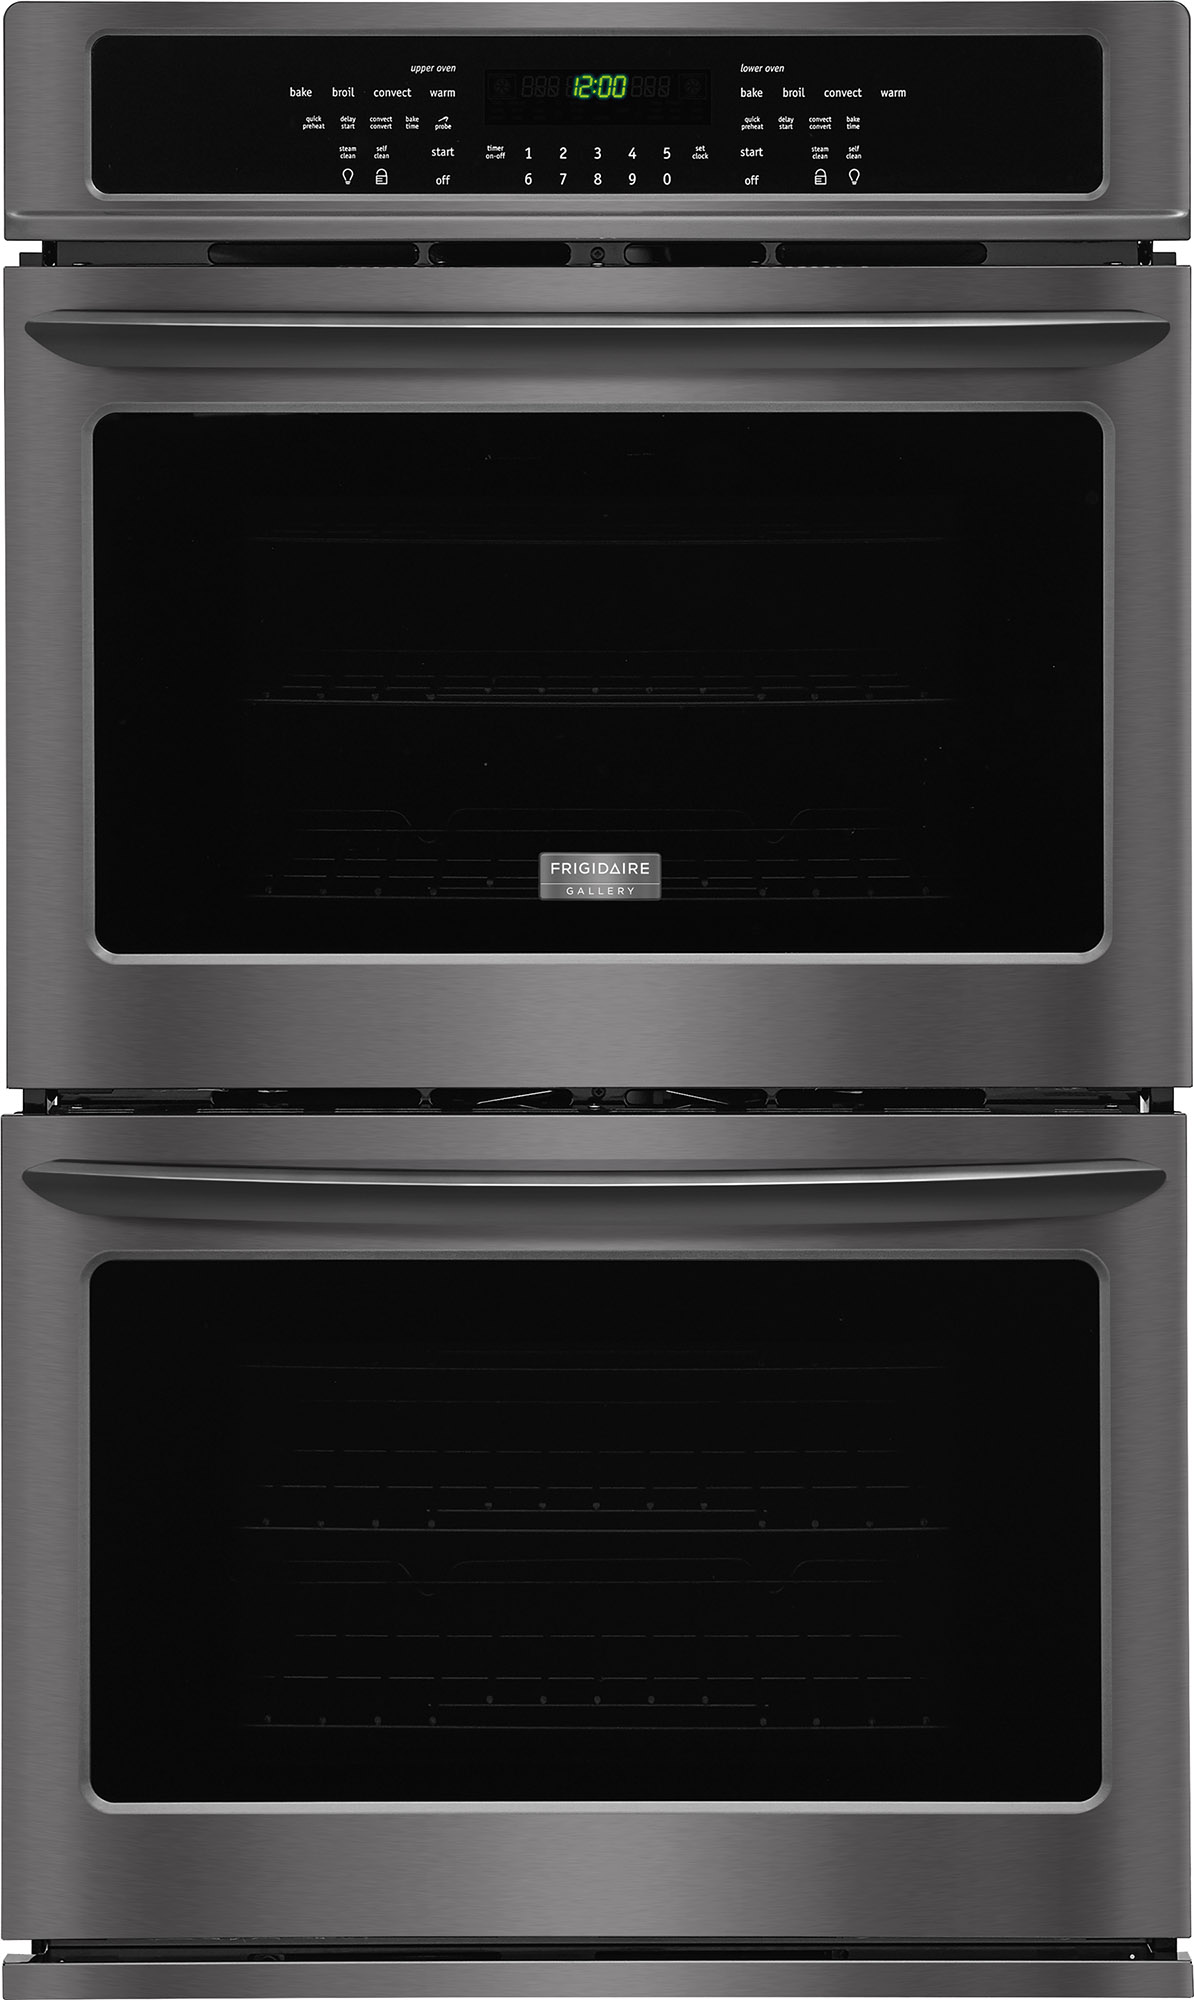 Frigidaire Gallery launches new smudgeproof black